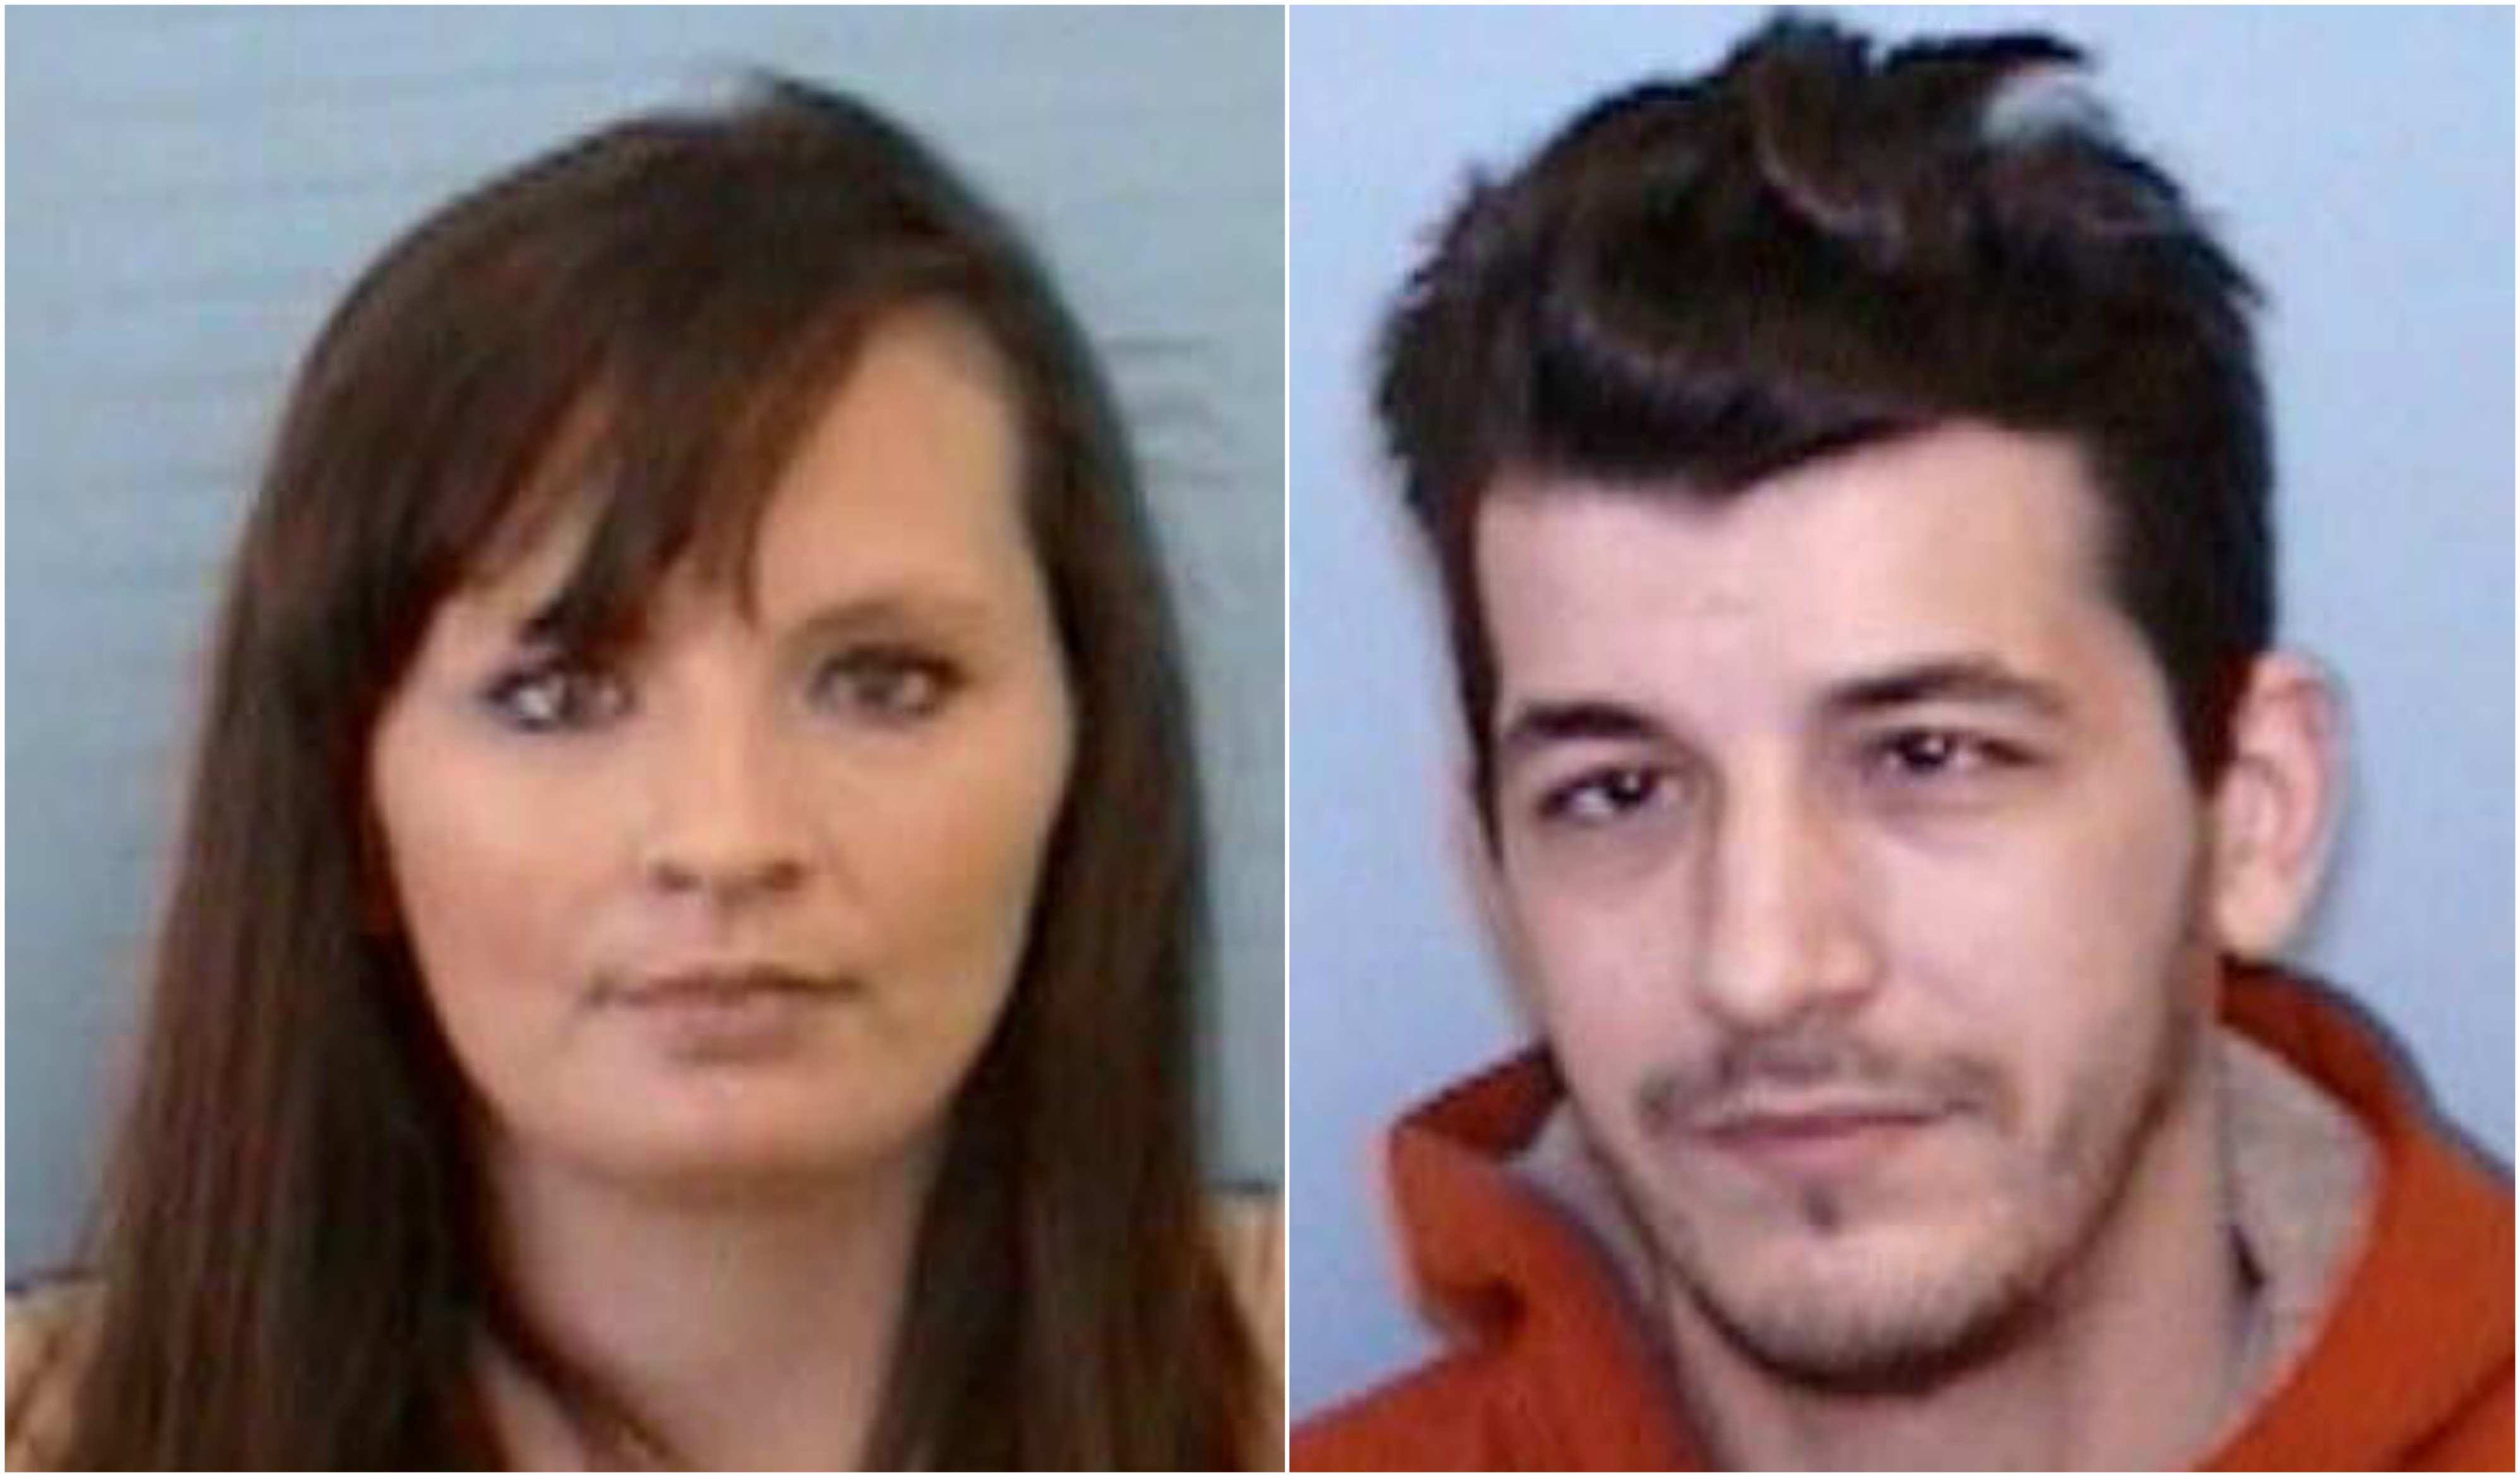 Frank Viola Jr., 36, and wife Brandy Danielle Tipton, 36, were charged with felony neglect of a disabled adult after officers found 66-year-old Anita Tipton with maggots in her hair and covered in human feces. (Photo credit: Mitchell County Sheriff's Office)